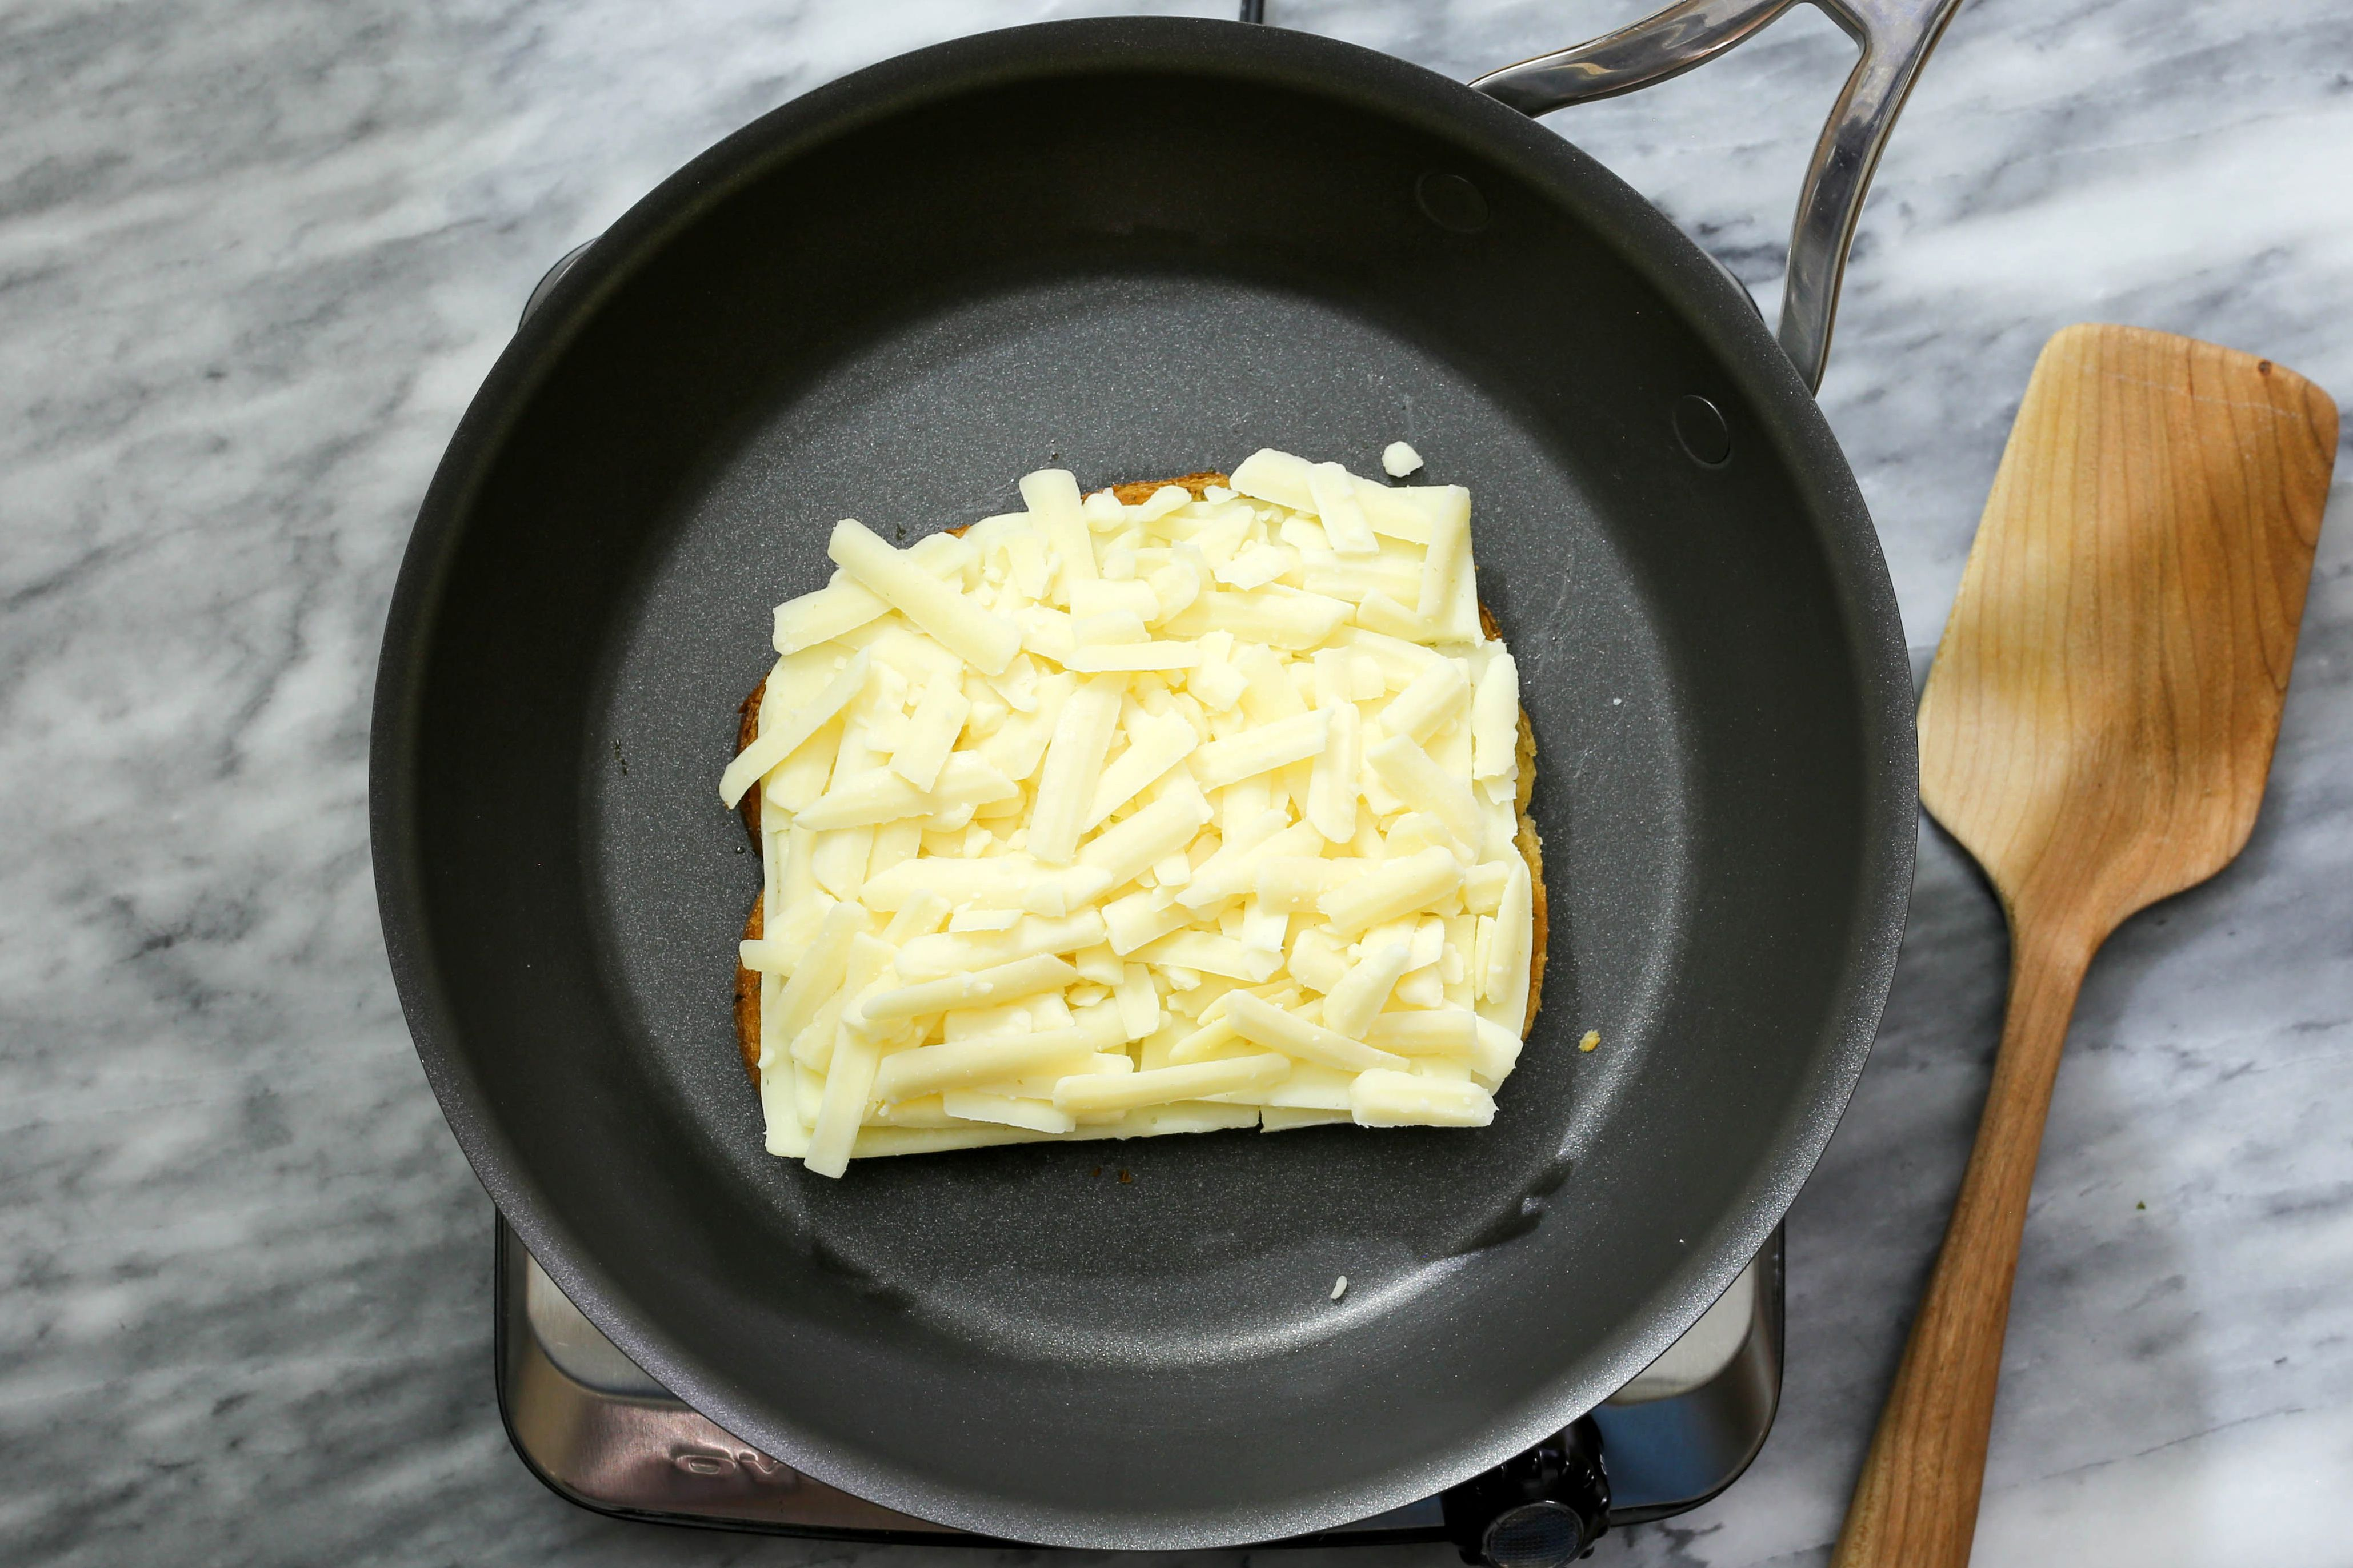 Grilled cheese with mozzarella cheese